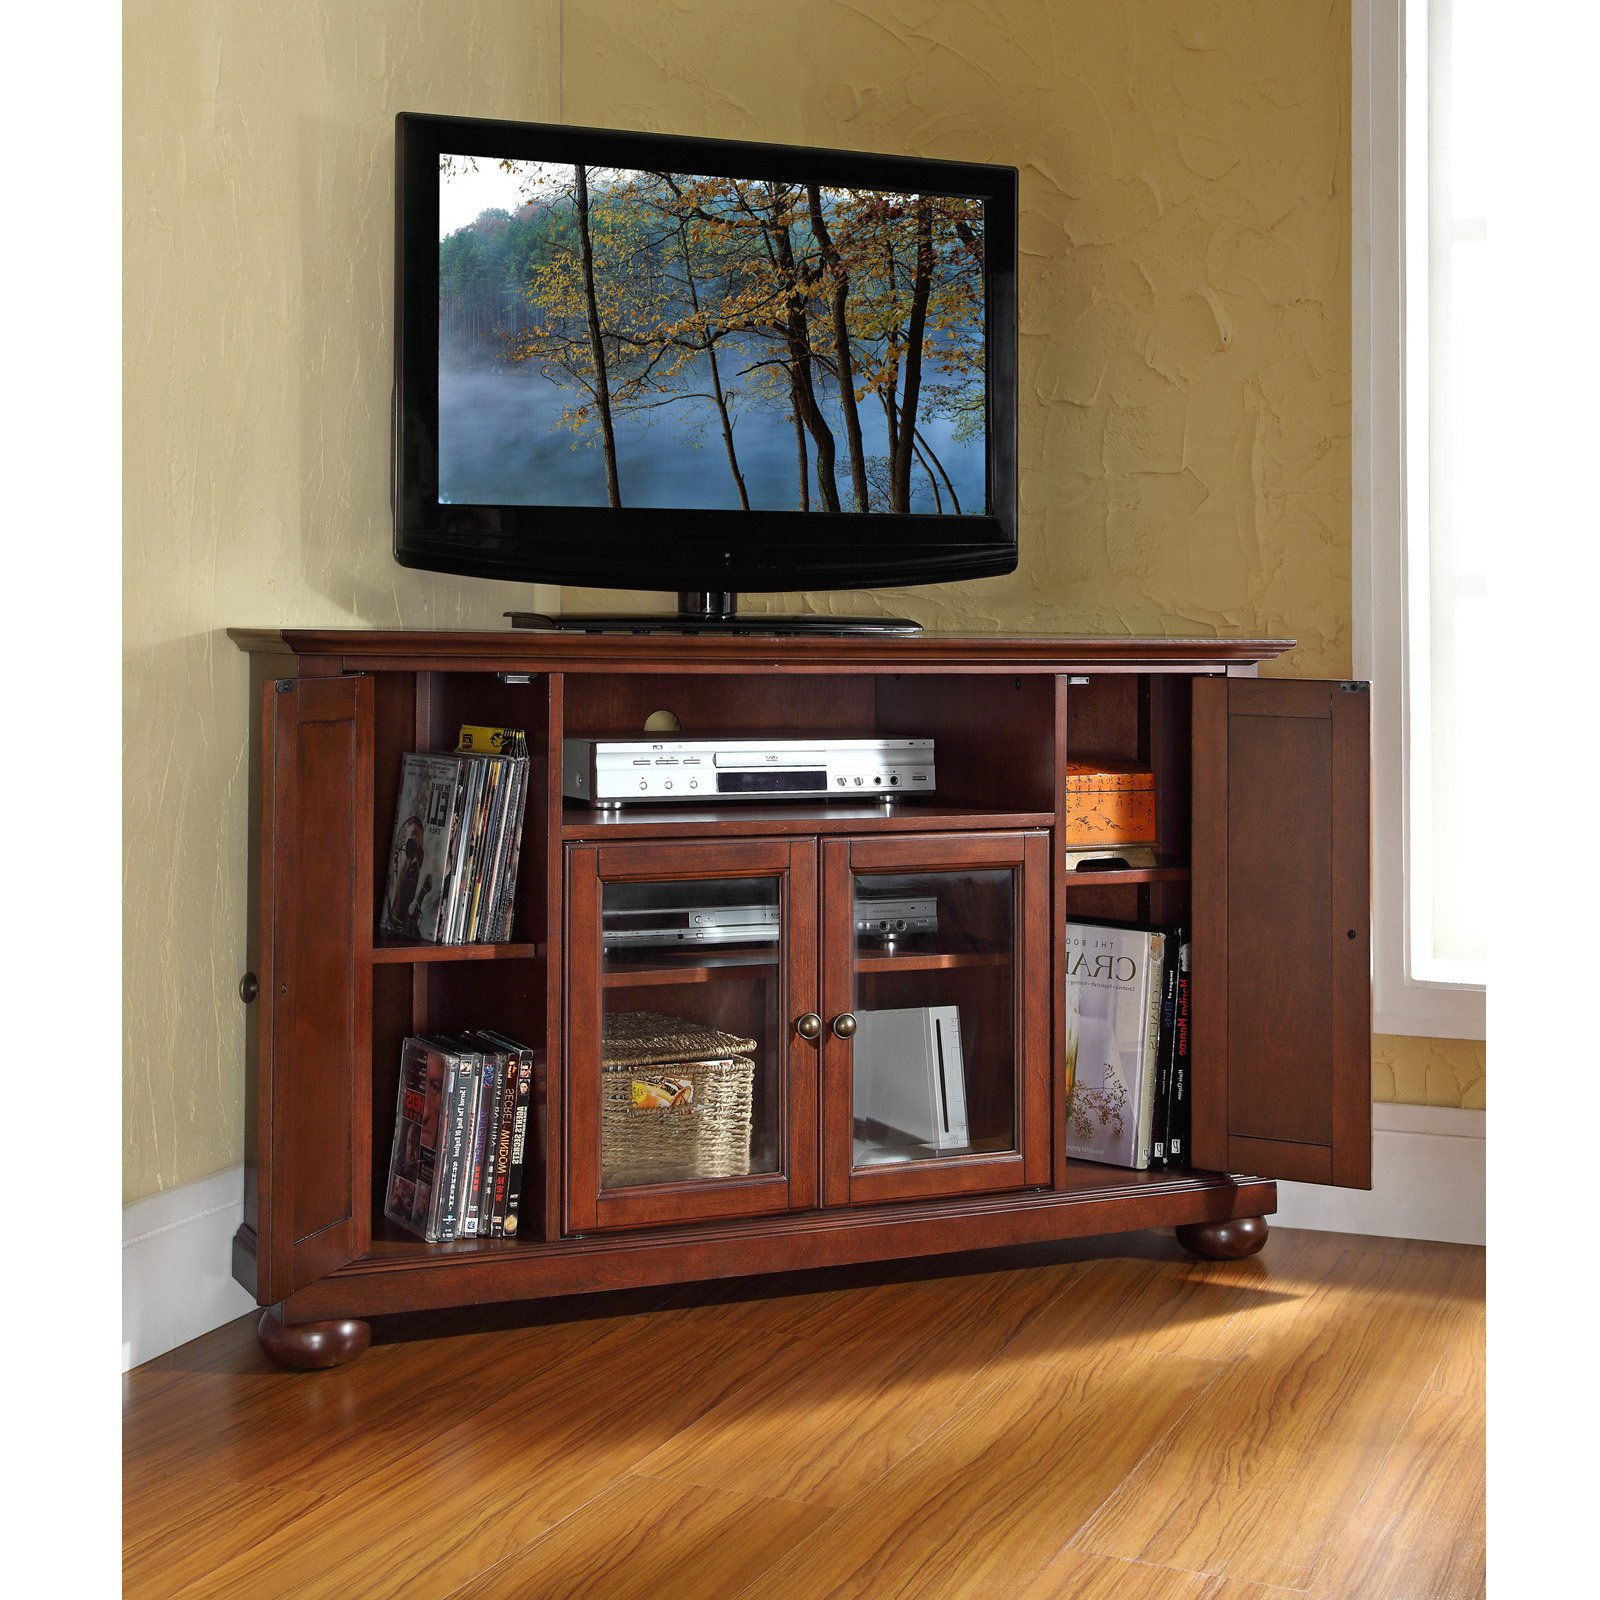 Most Recent Fireplace Tv Stand Amazon Stands Costco 55 Inch Walmart 65 Corner For 55 Inch Corner Tv Stands (View 15 of 20)